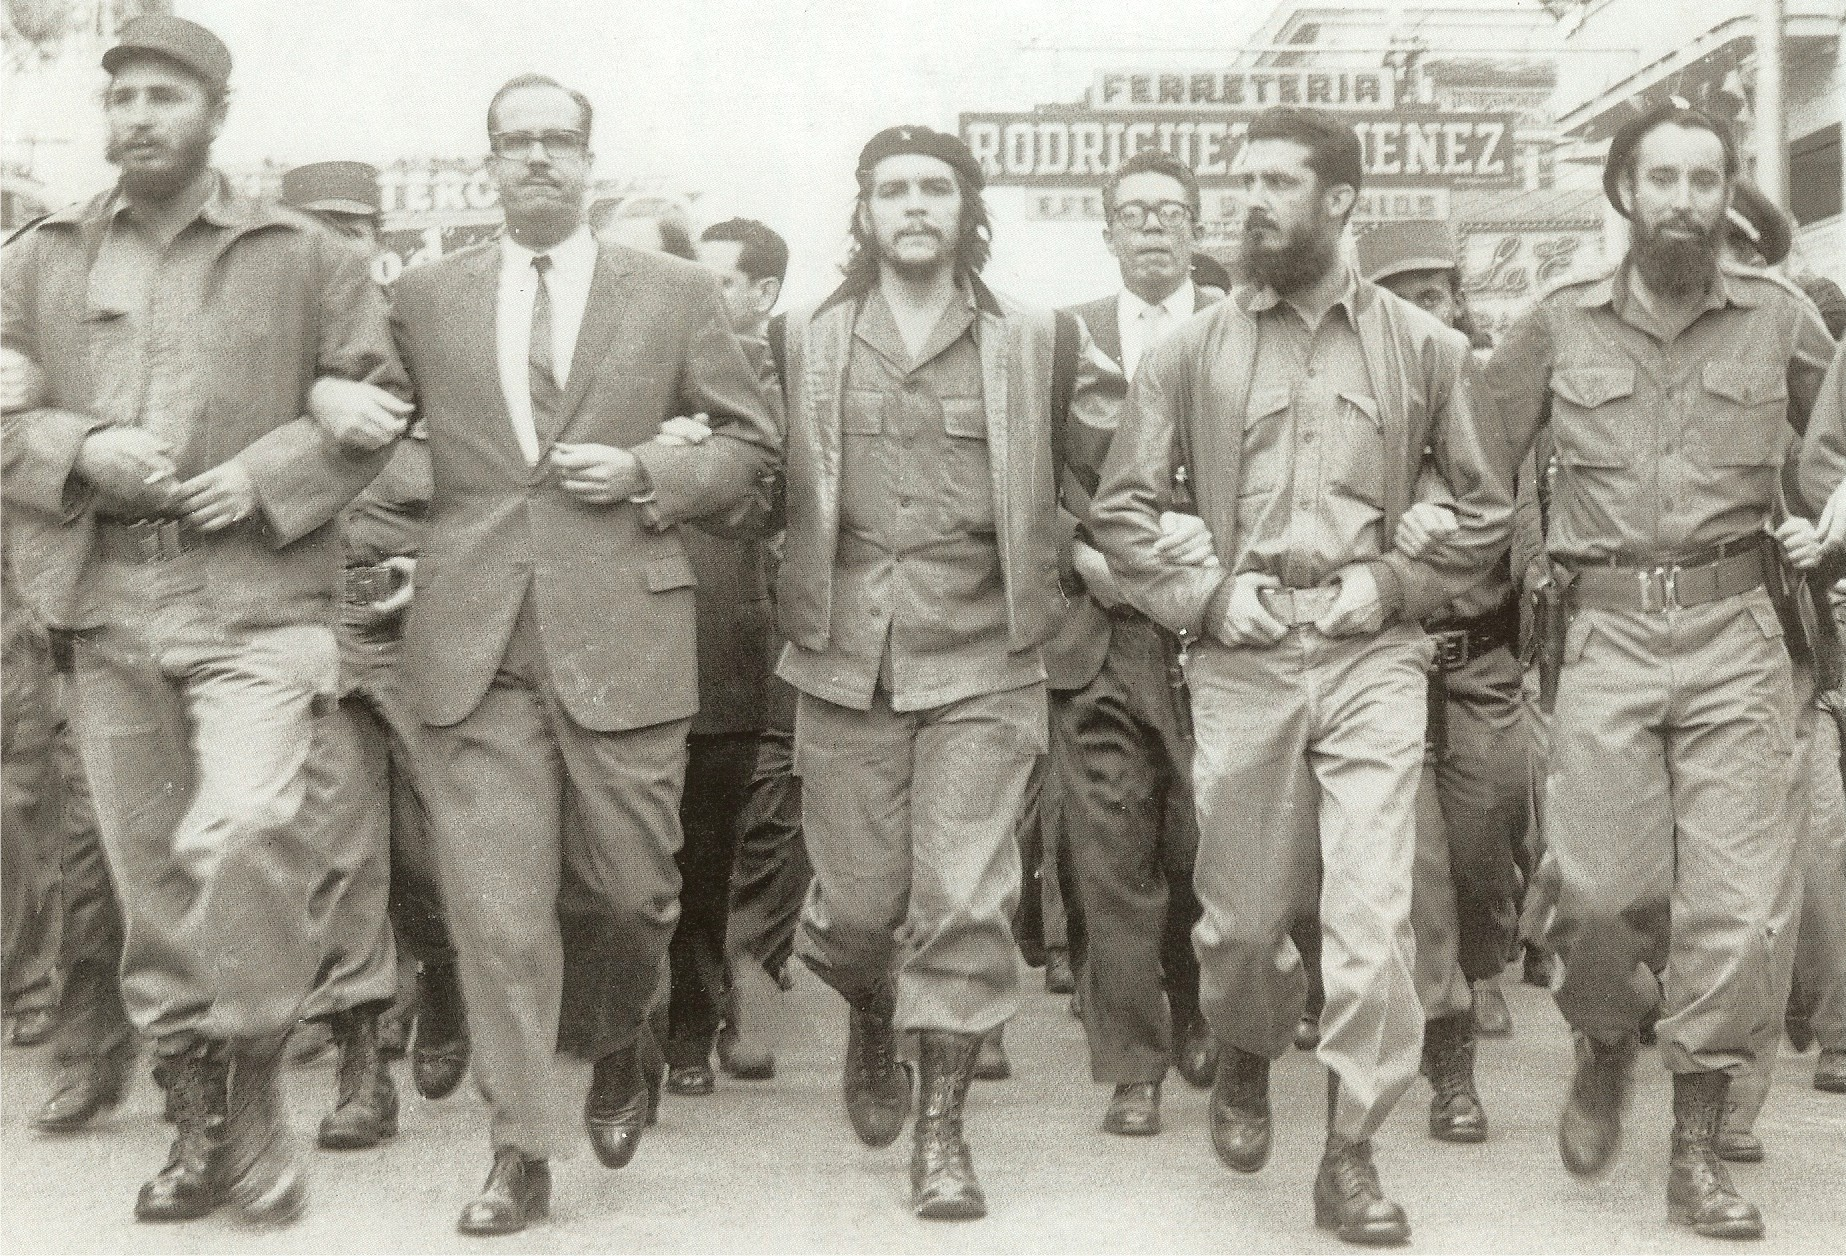 che guevara hero or villain argues that he is different english this photo was taken on 5 1960 in havana